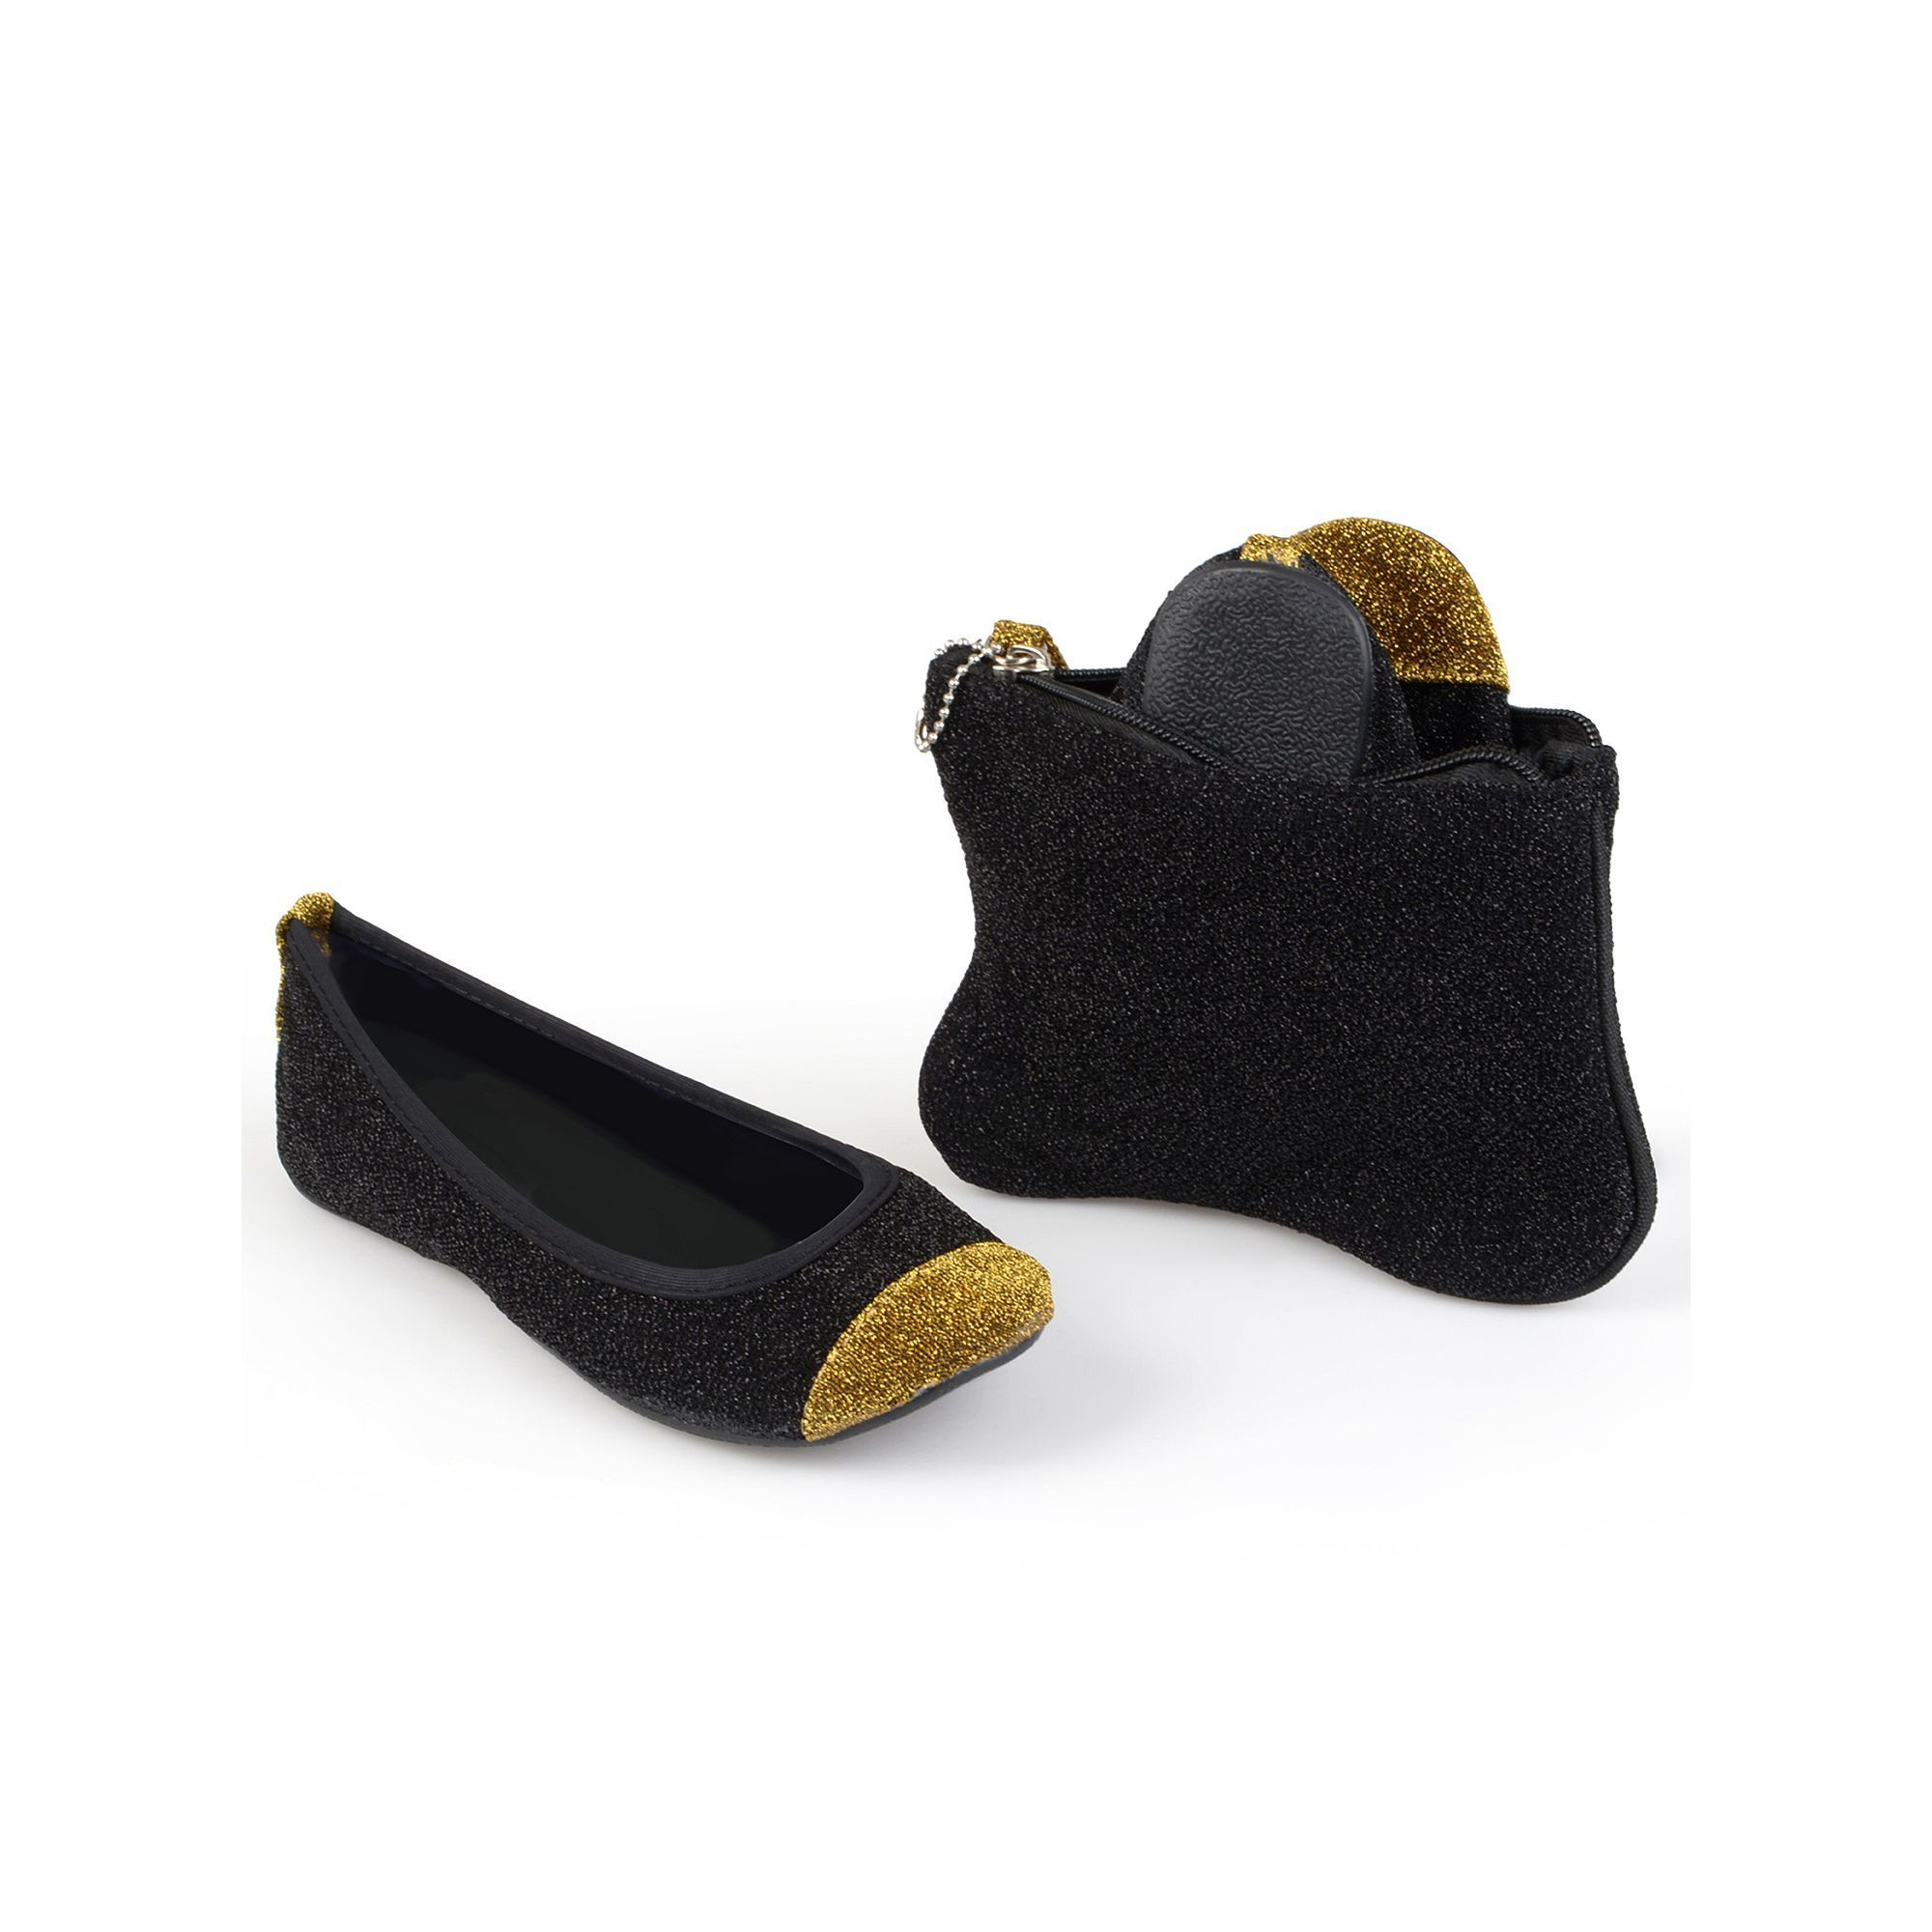 free shipping for cheap Sidekicks Women's Foldable ... Glitter Ballet Flats collections online Cheapest cheap online clearance with mastercard discount professional qPLKHEq